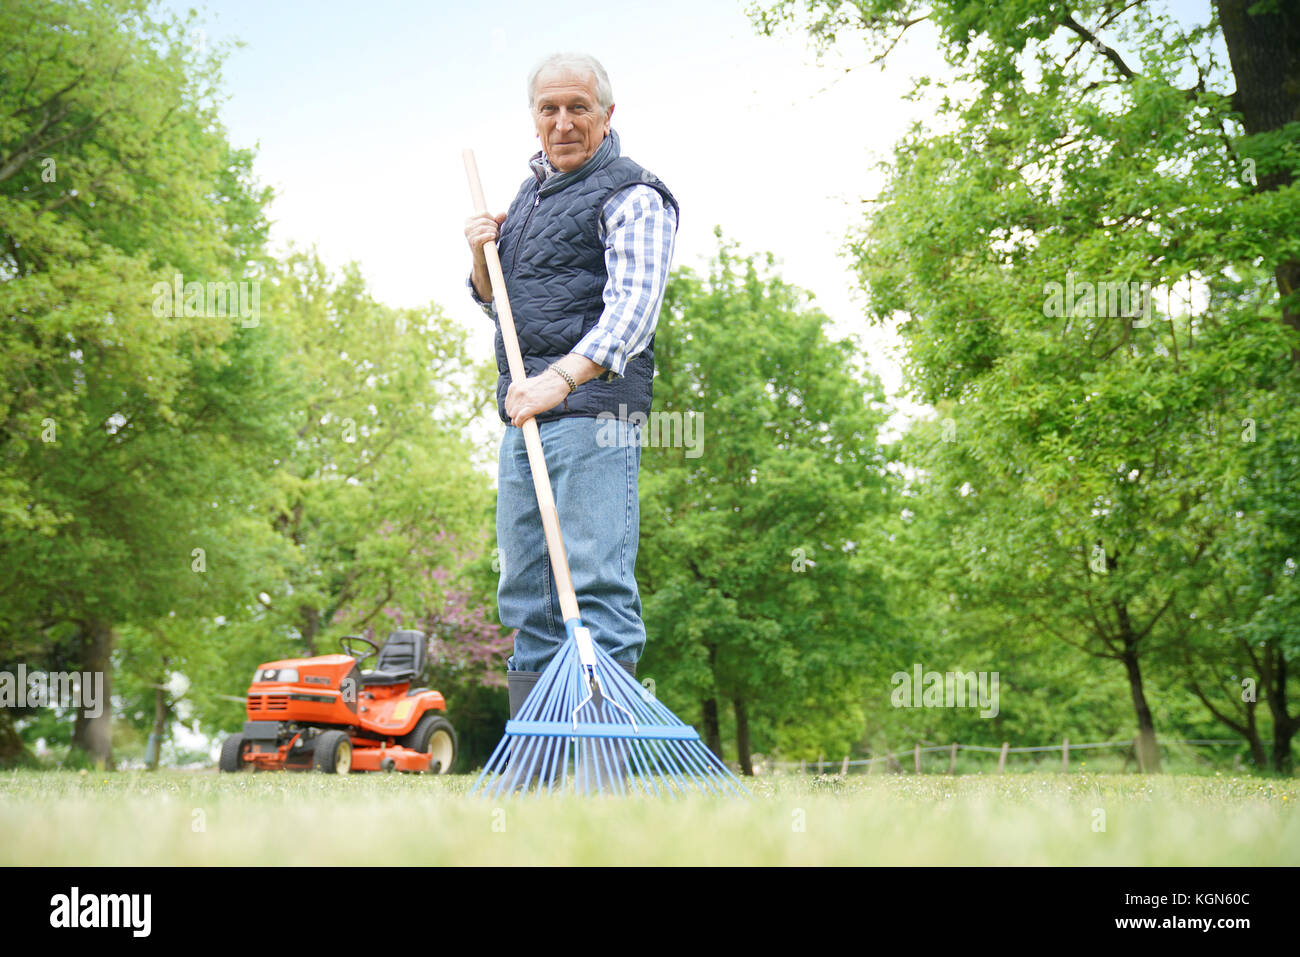 Senior man in garden cleaning lawn with rake - Stock Image